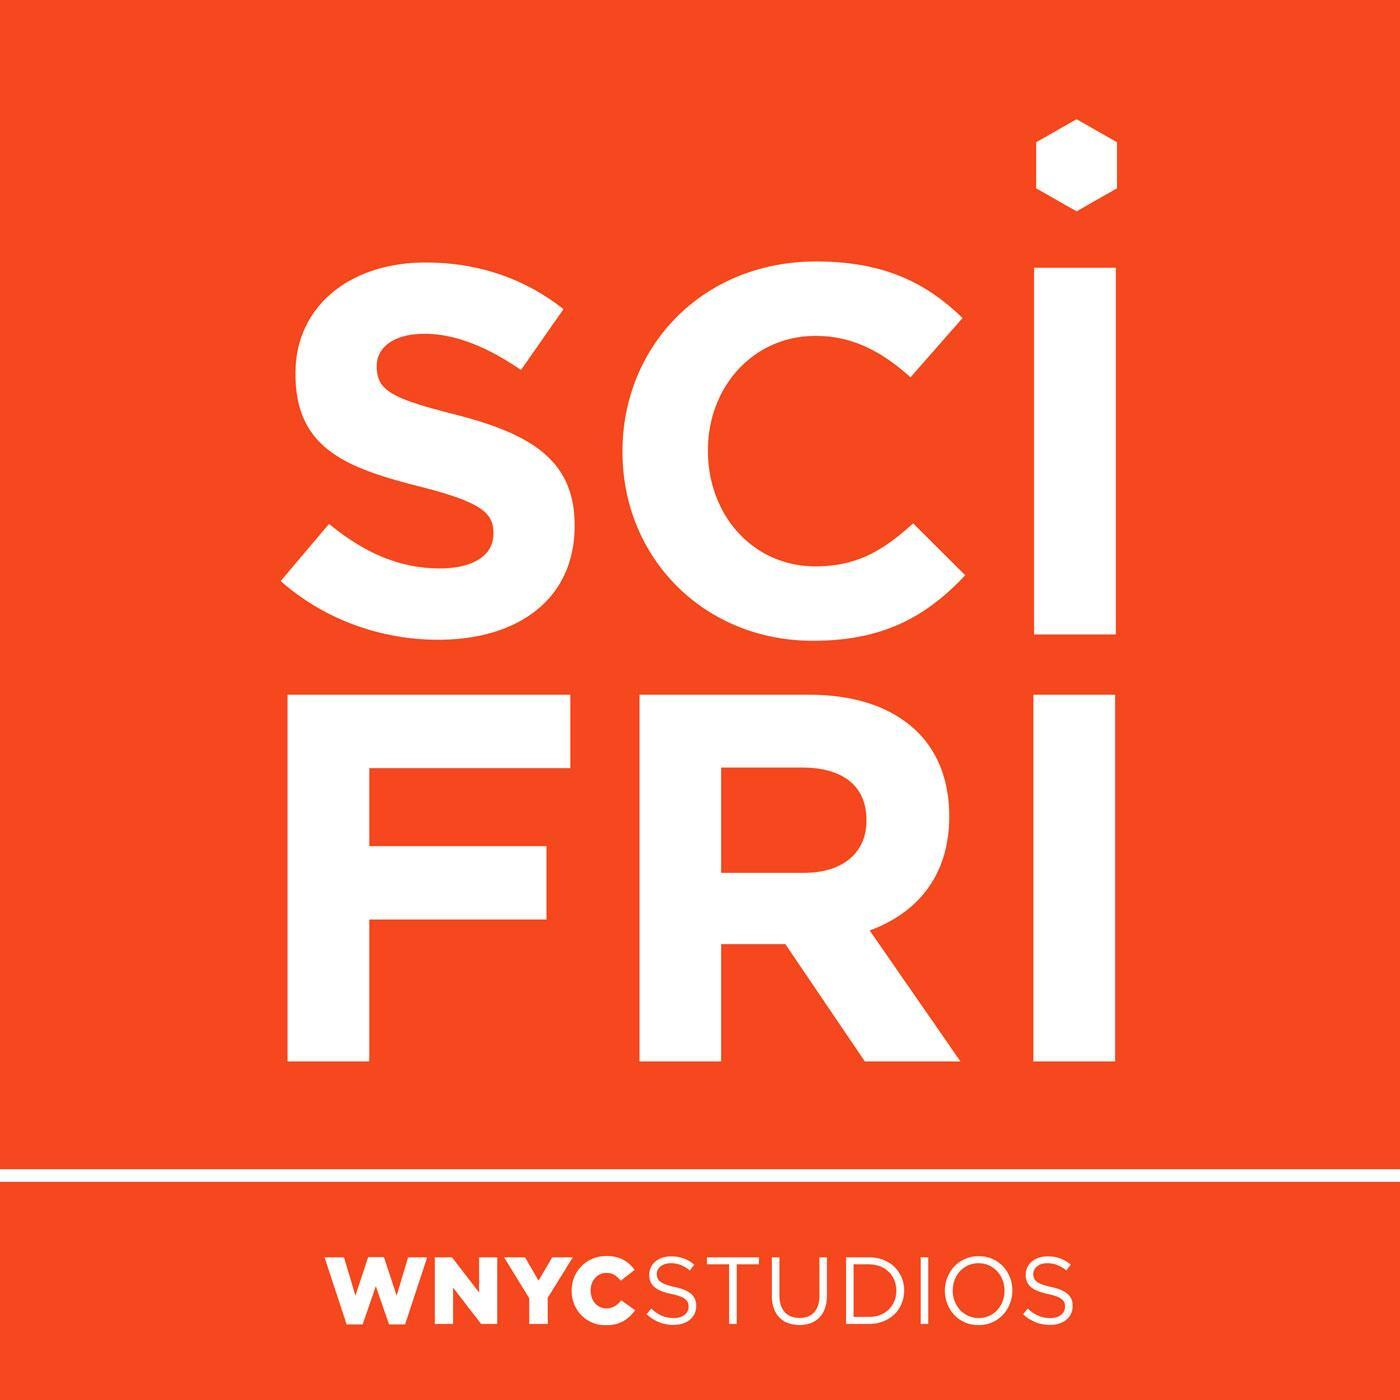 friday science podcast podcasts apple covid npr scifri tunein mind stuff equalizer blow stitcher icon sci wnyc fri curious open